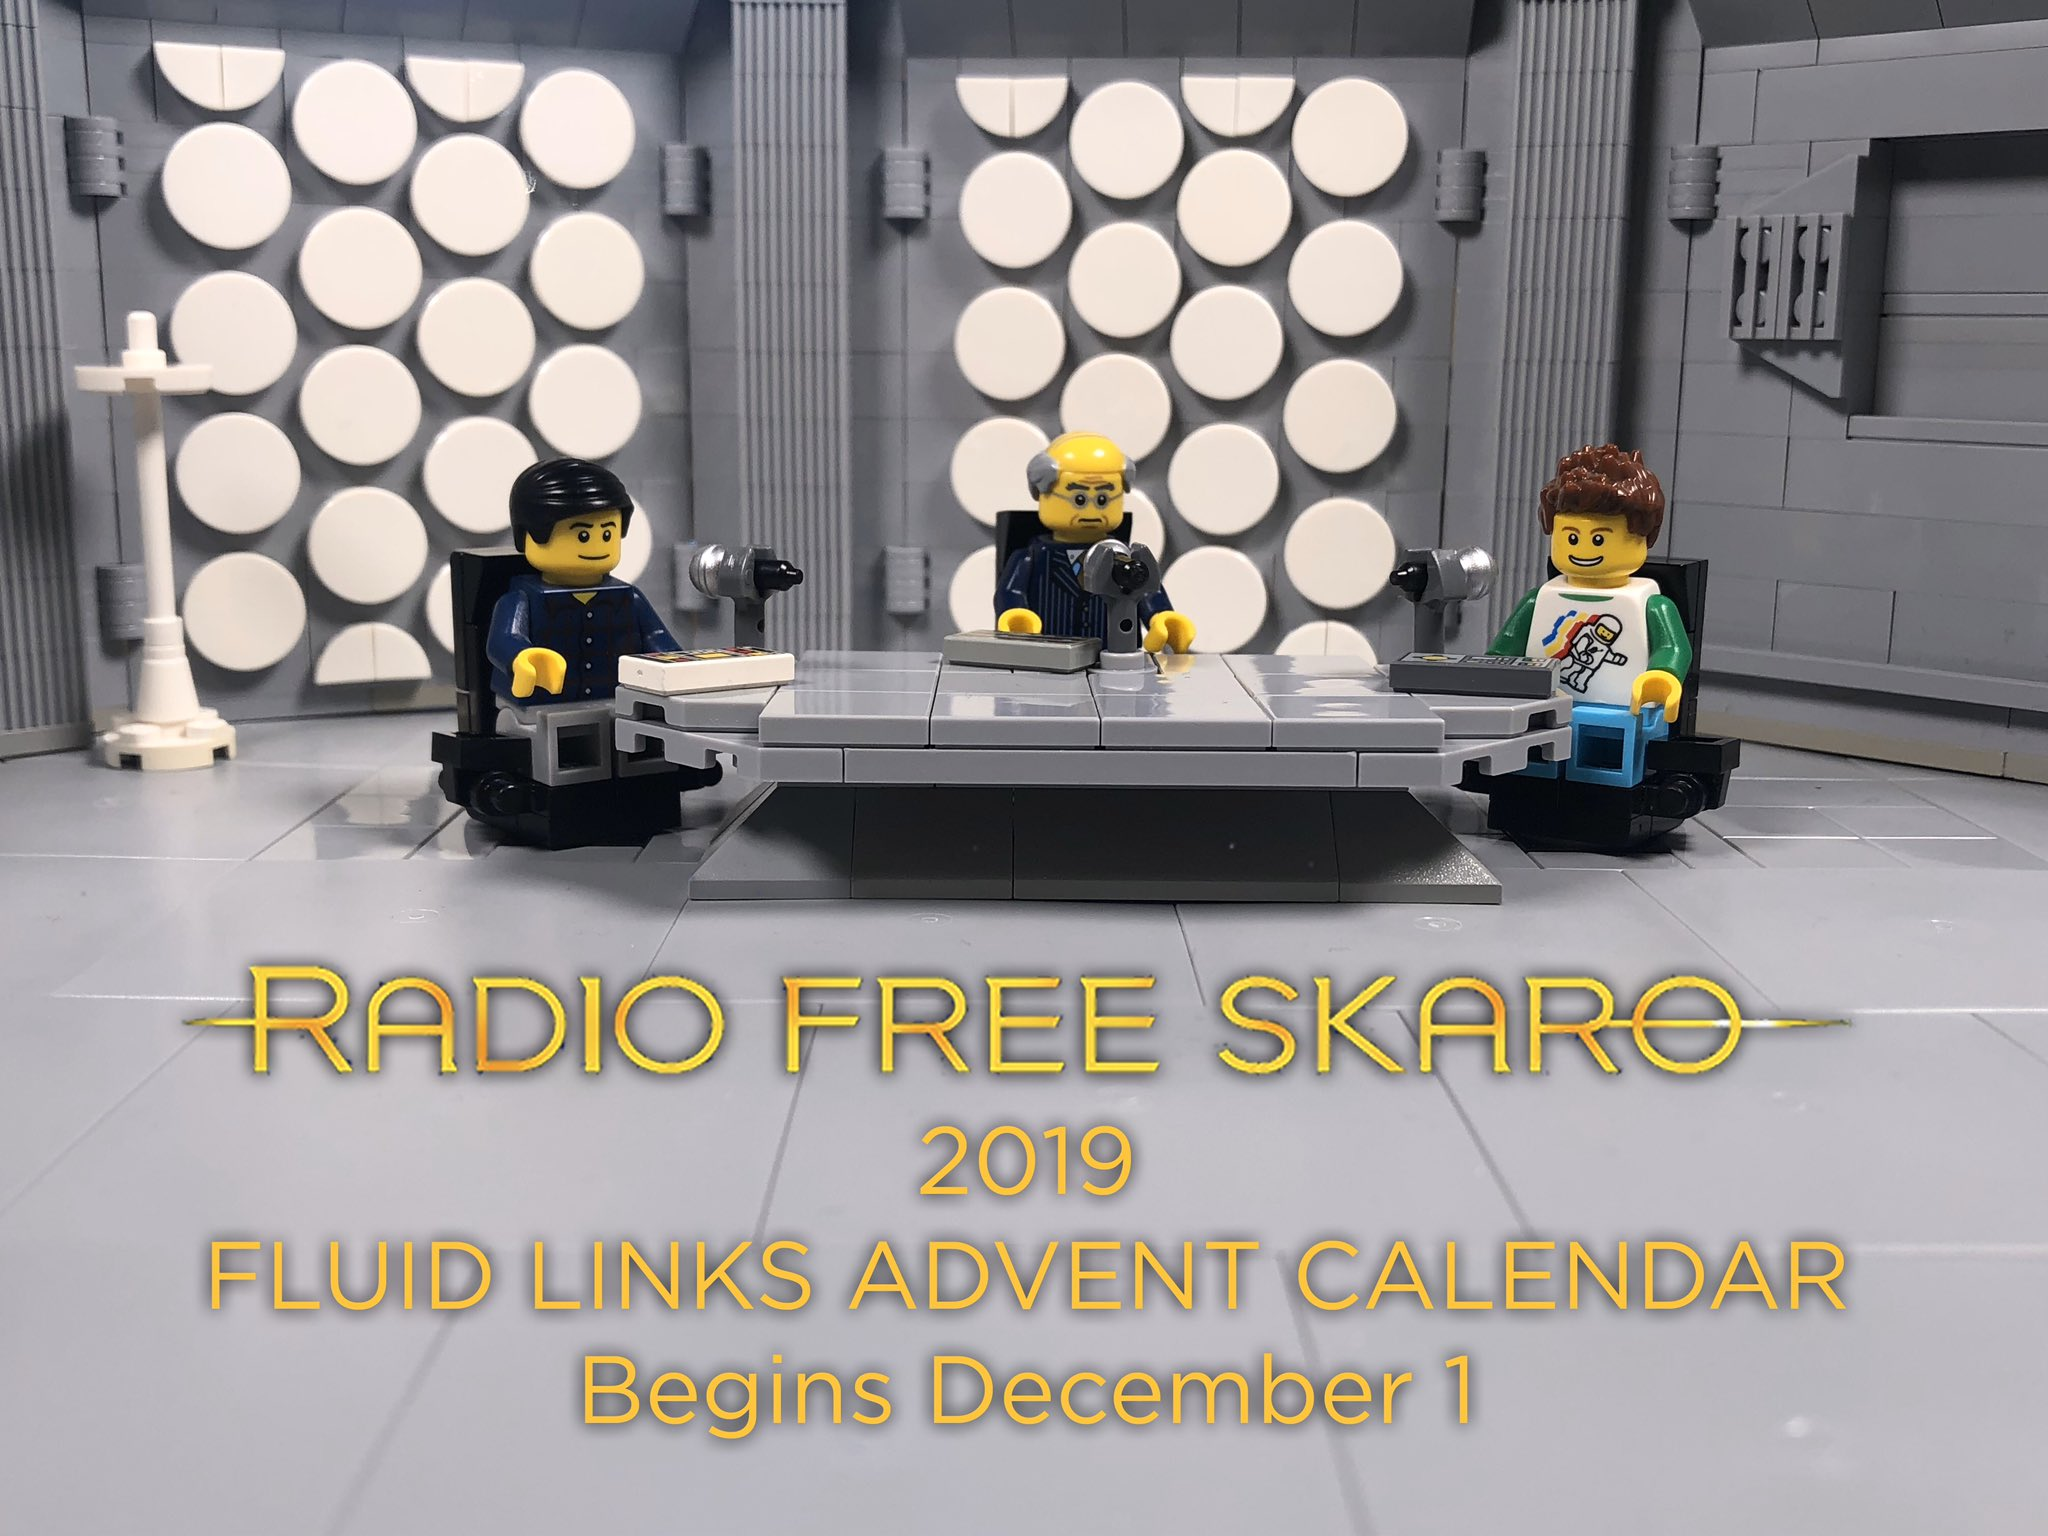 Radio Free Skaro On Twitter Beginning December 1 It S The 2019 Radio Free Skaro Fluidlinks Advent Calendar Available In Both Audio And Lego Telesnap Versions We Have The Last Few To Record